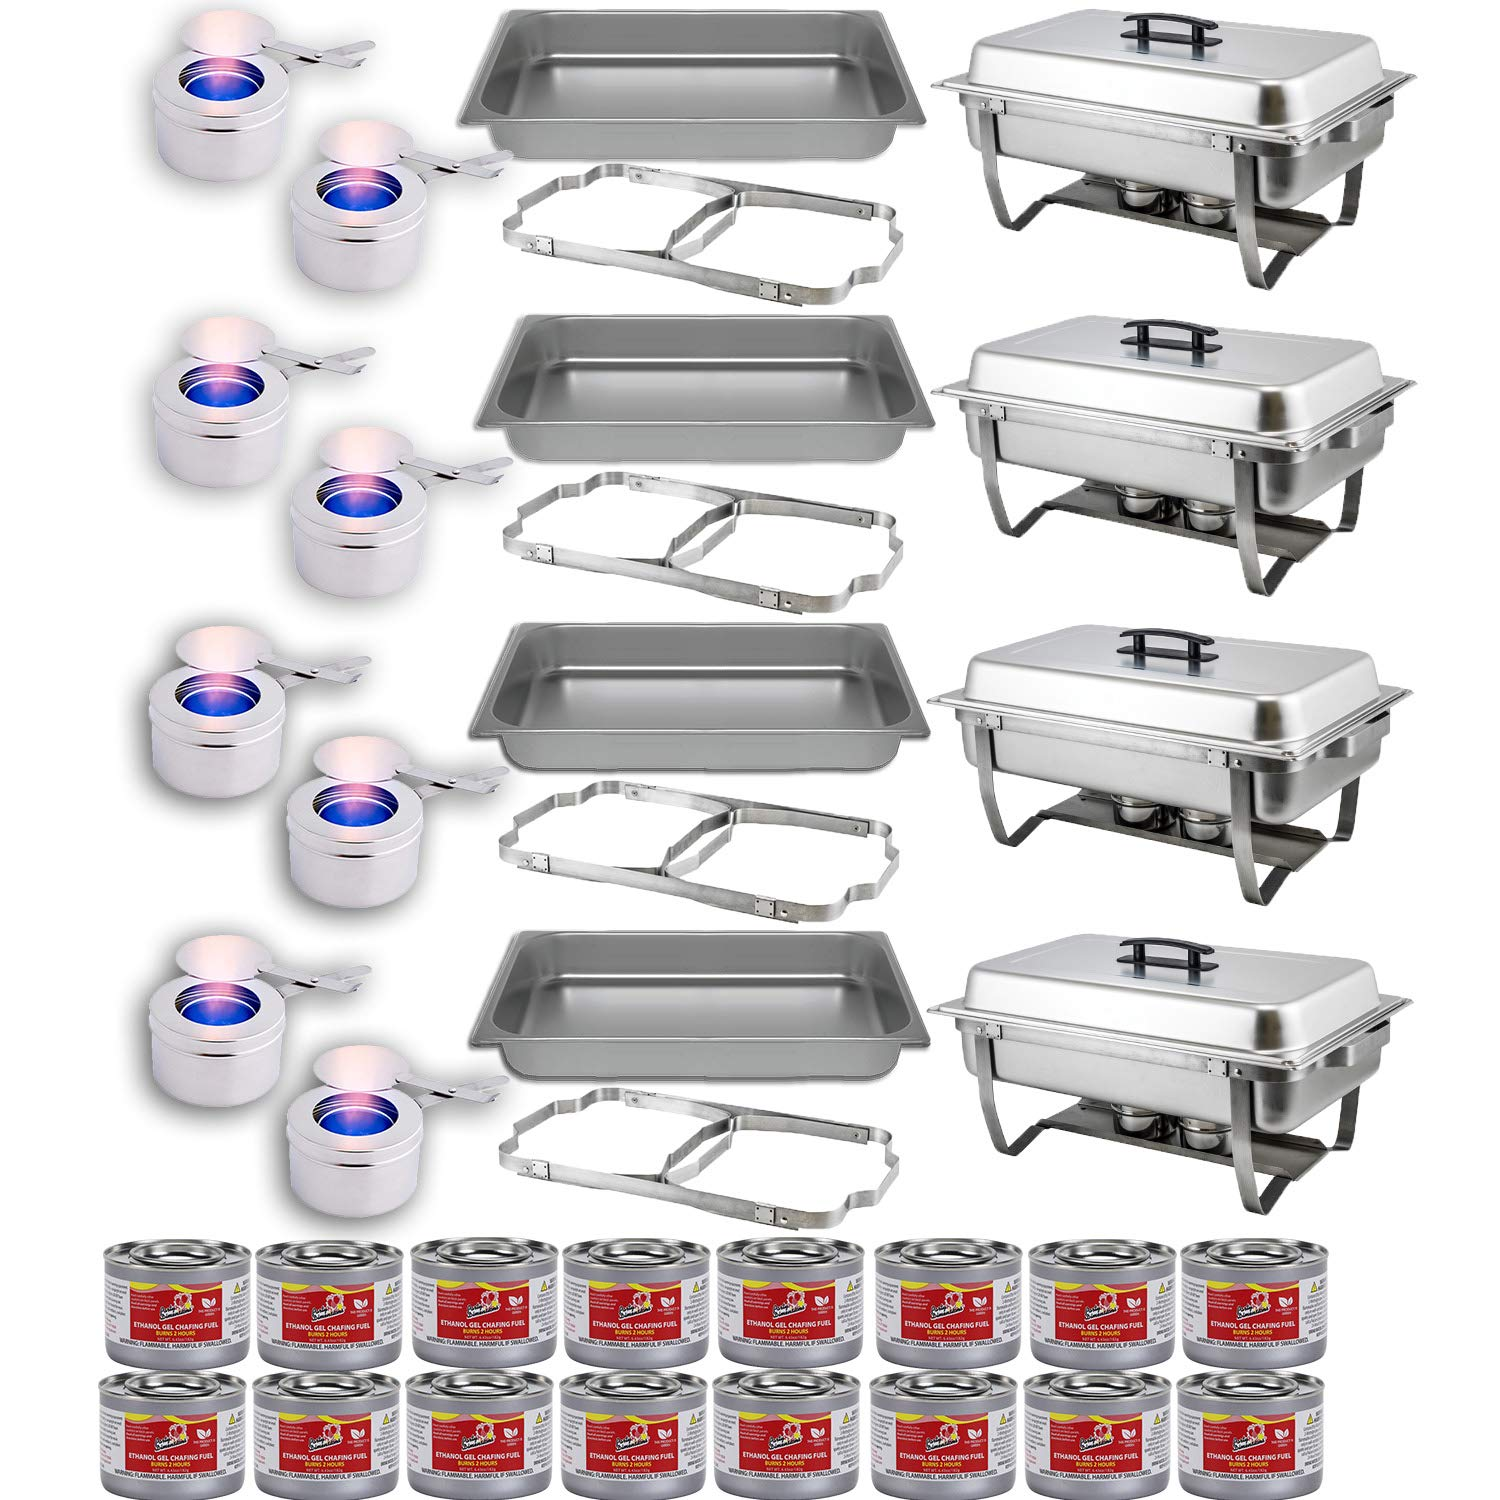 Chafing Dish Buffet Set w/Fuel - Folding Frame + Water Pan + Food Pan (8 qt) + 8 Fuel Holders + 16 Fuel Cans - 4 Full Warmer Kit, Stainless Steel Construction by HeroFiber